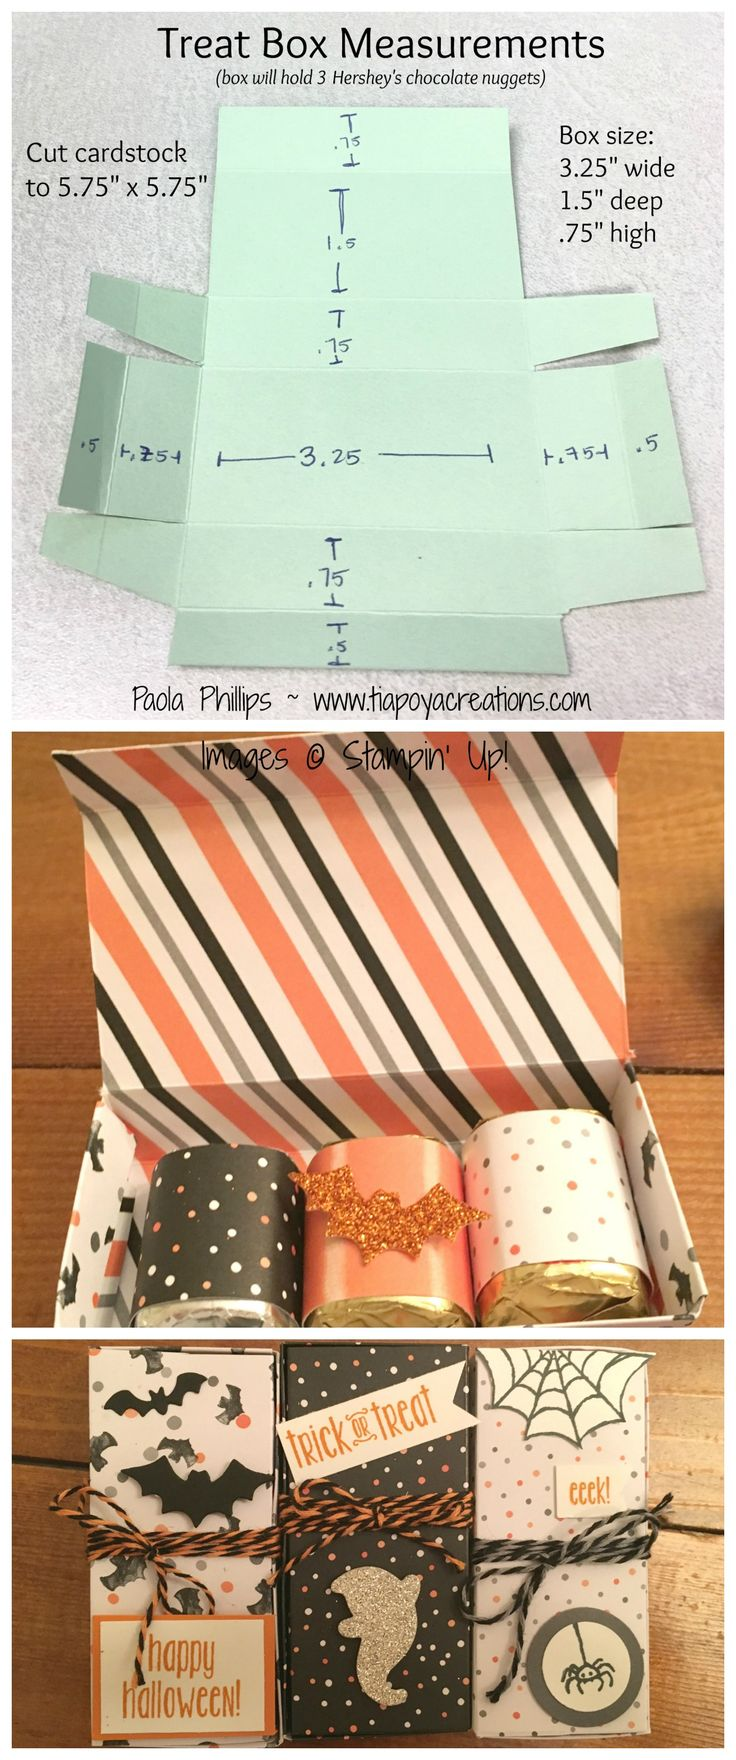 Halloween treat box instructions - handmade by Paola Phillips